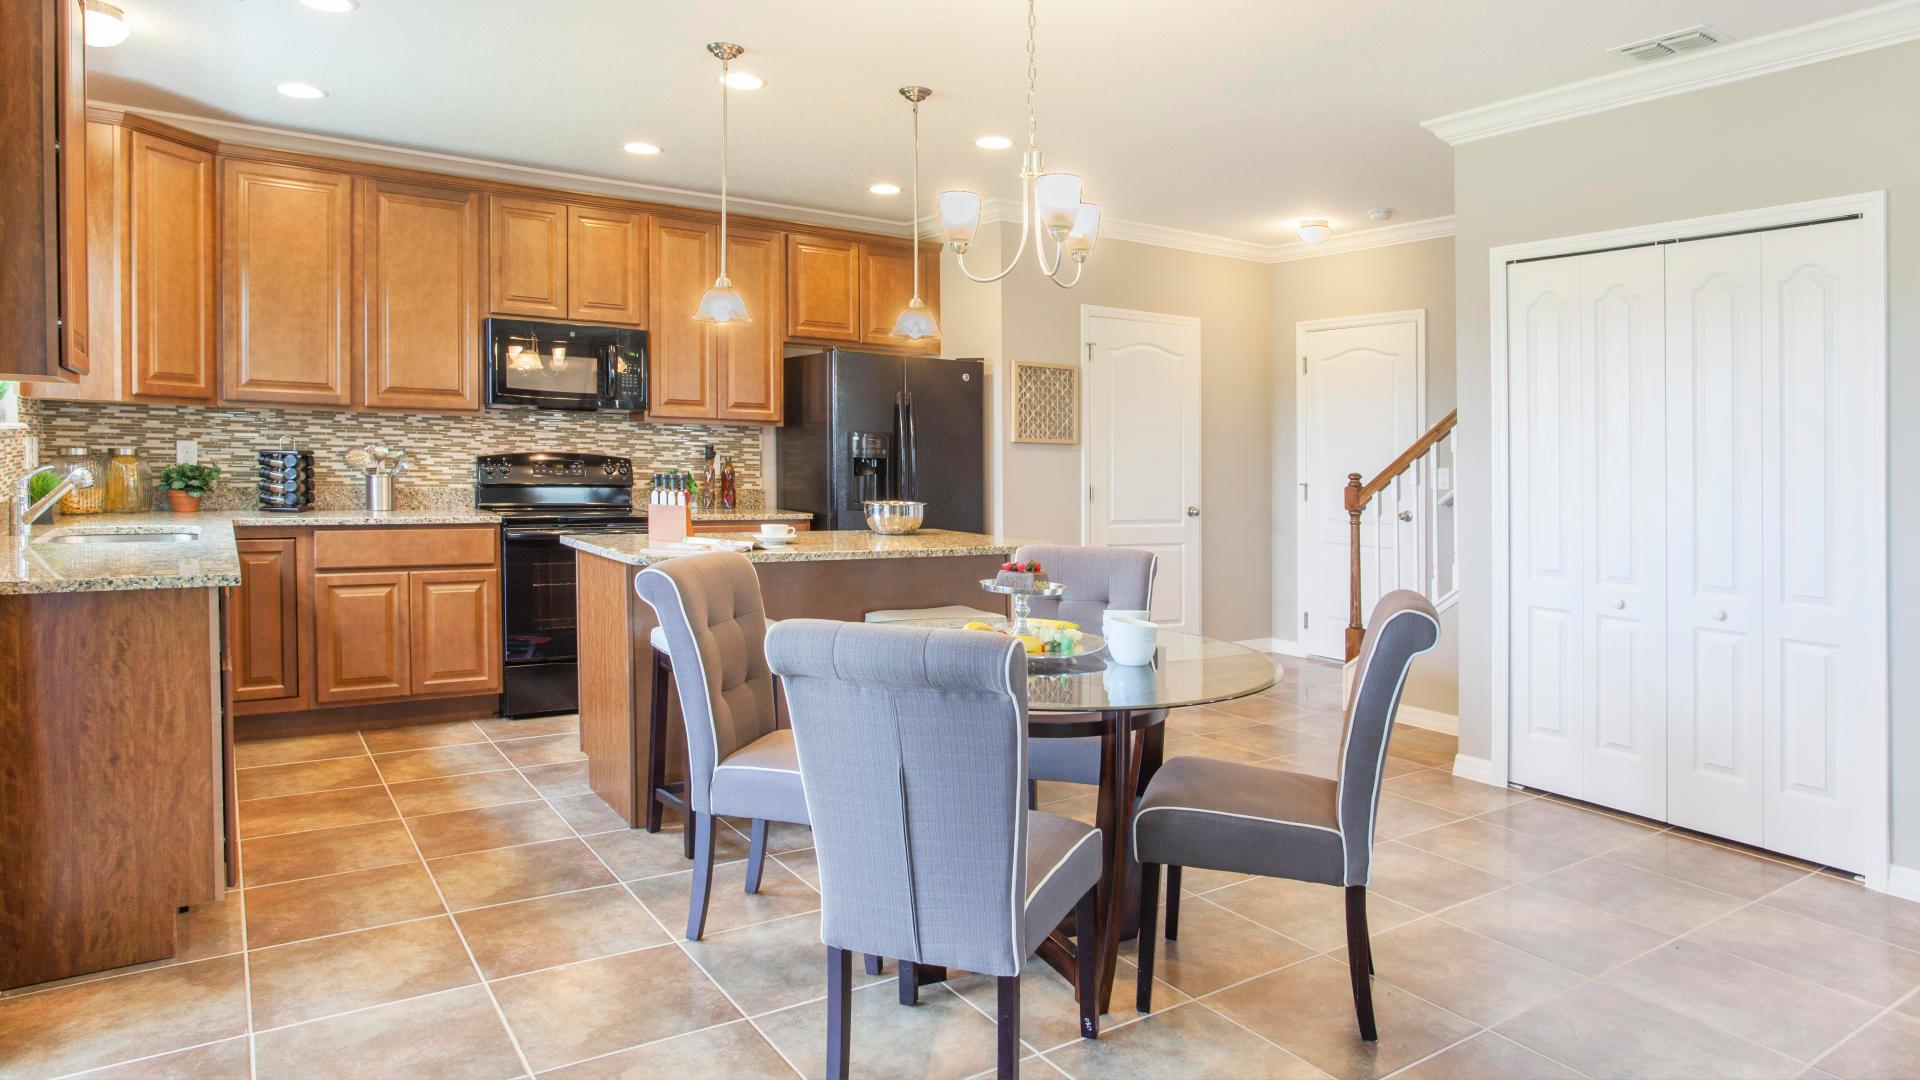 Kitchen featured in the Rockford By Maronda Homes in Daytona Beach, FL